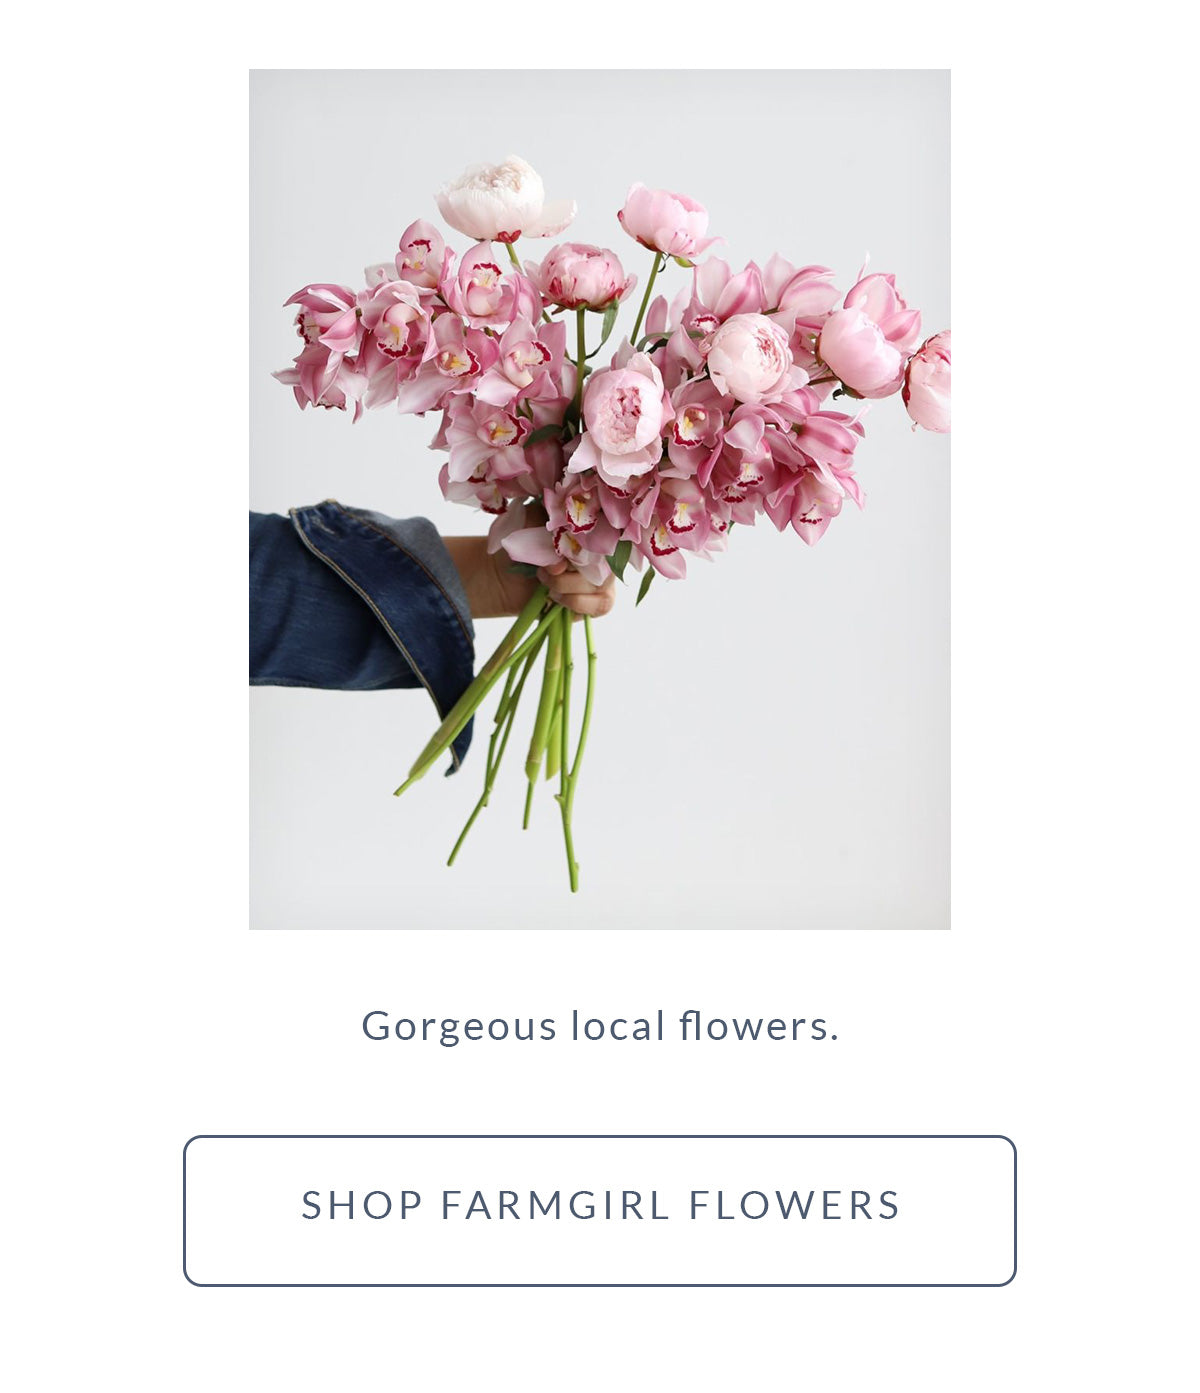 Free x Rein Gift Guide - Local Flowers